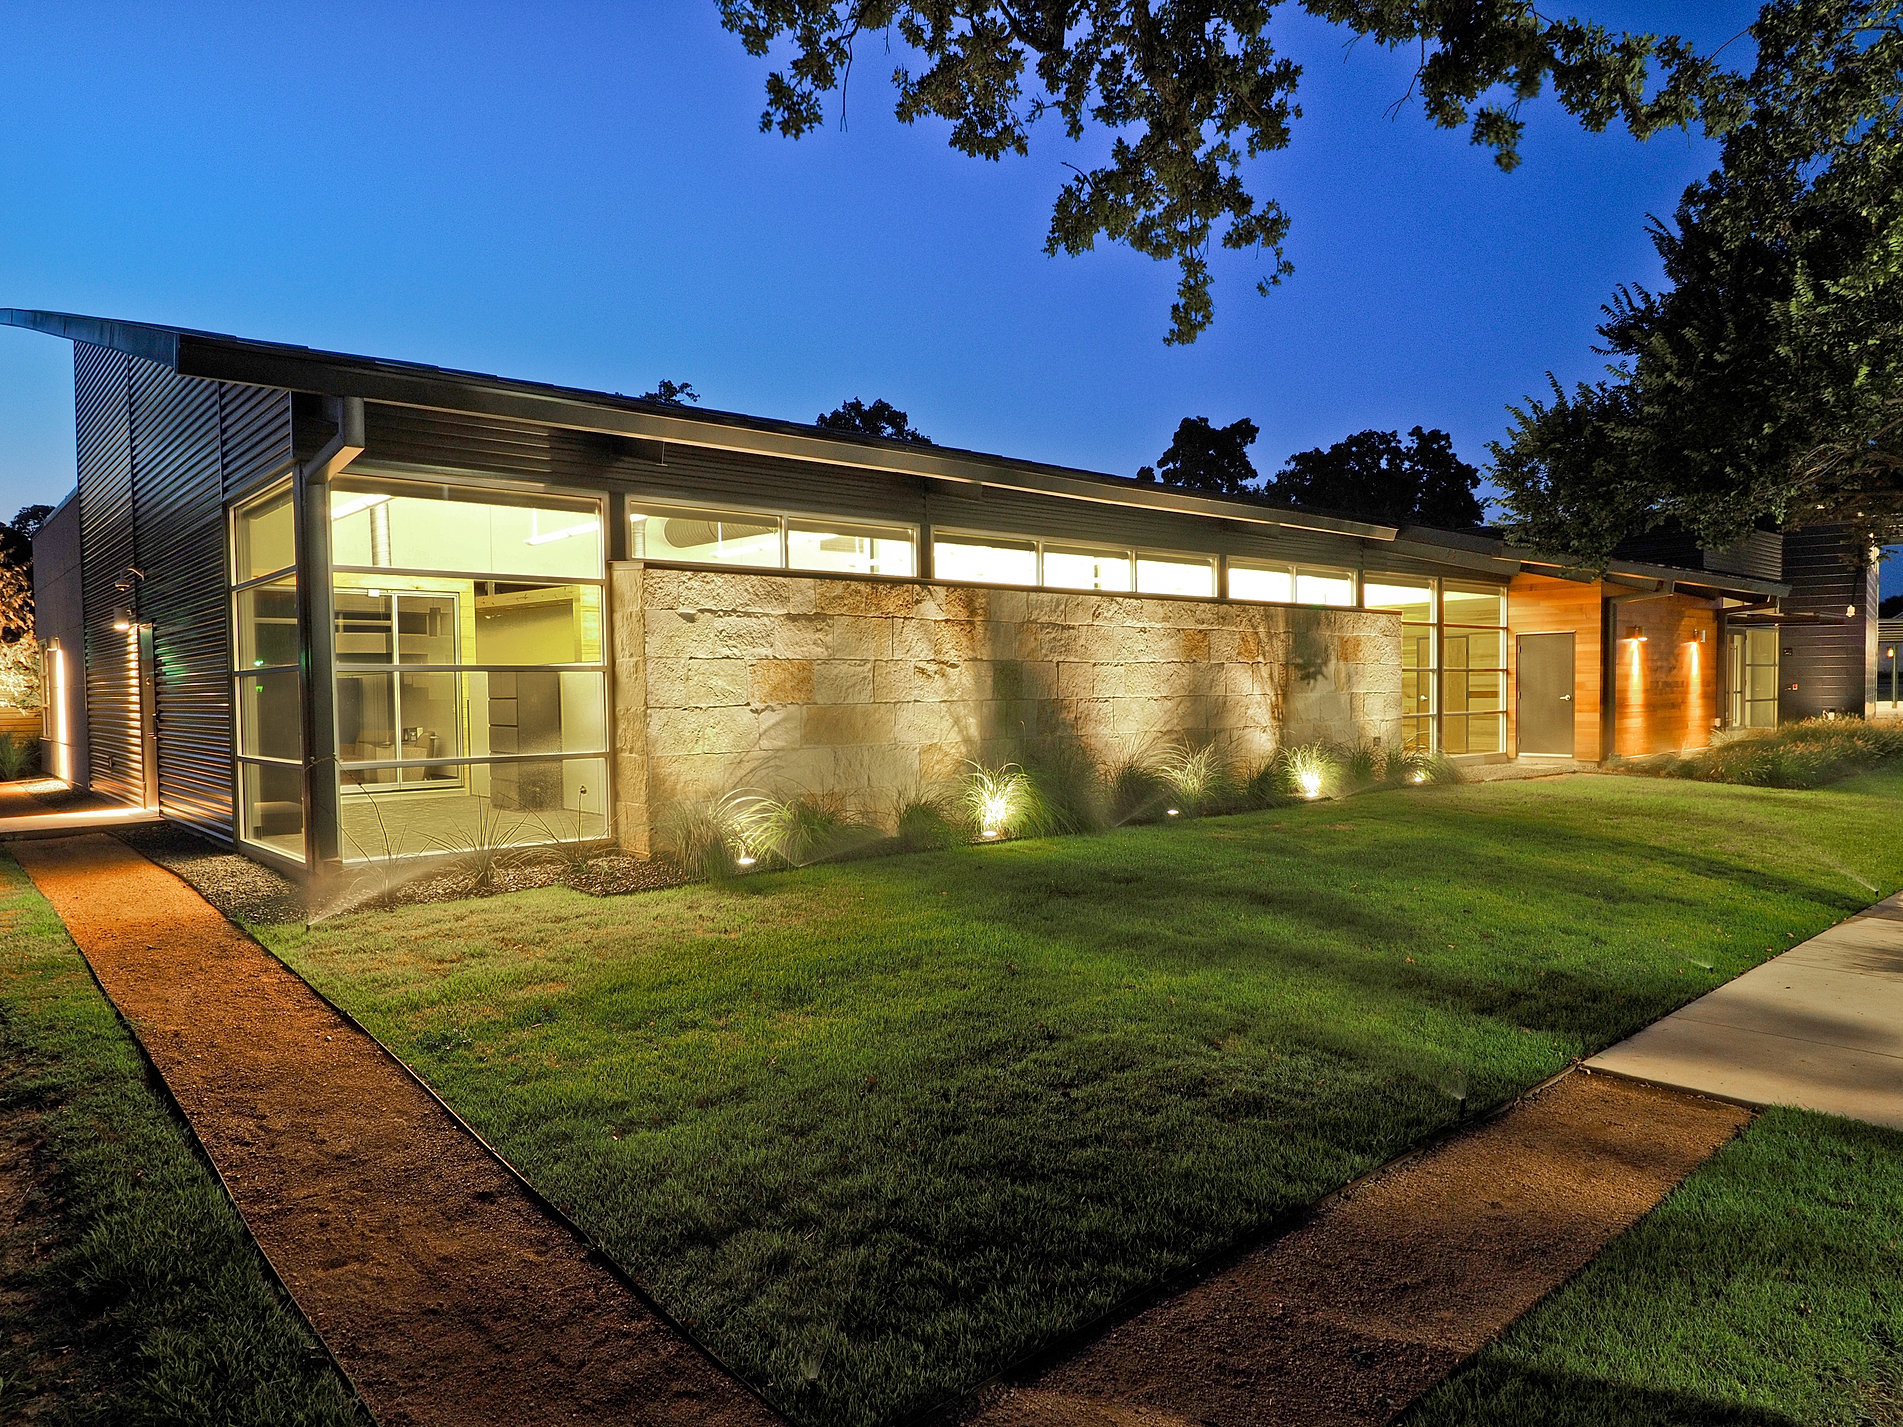 Hill country architect united states mustard design for Hill country architects